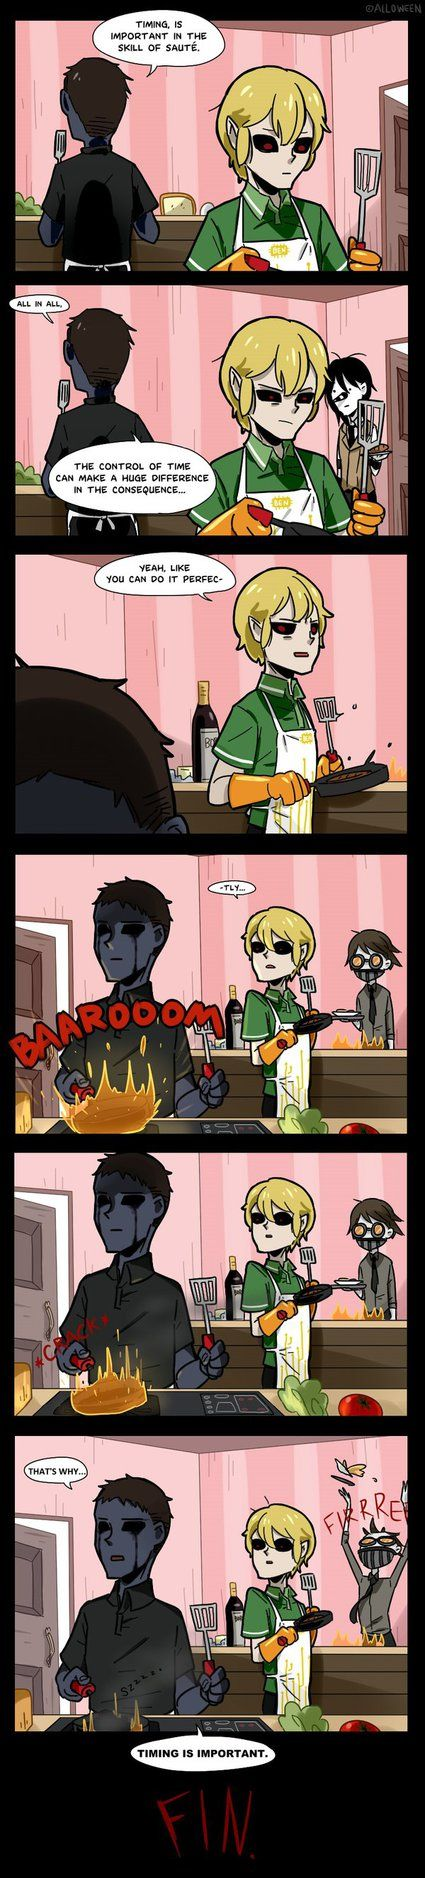 Creepypasta Cafe 016 by Alloween.deviantart.com on @DeviantArt  I usually don't pin this stuff but this is too funny